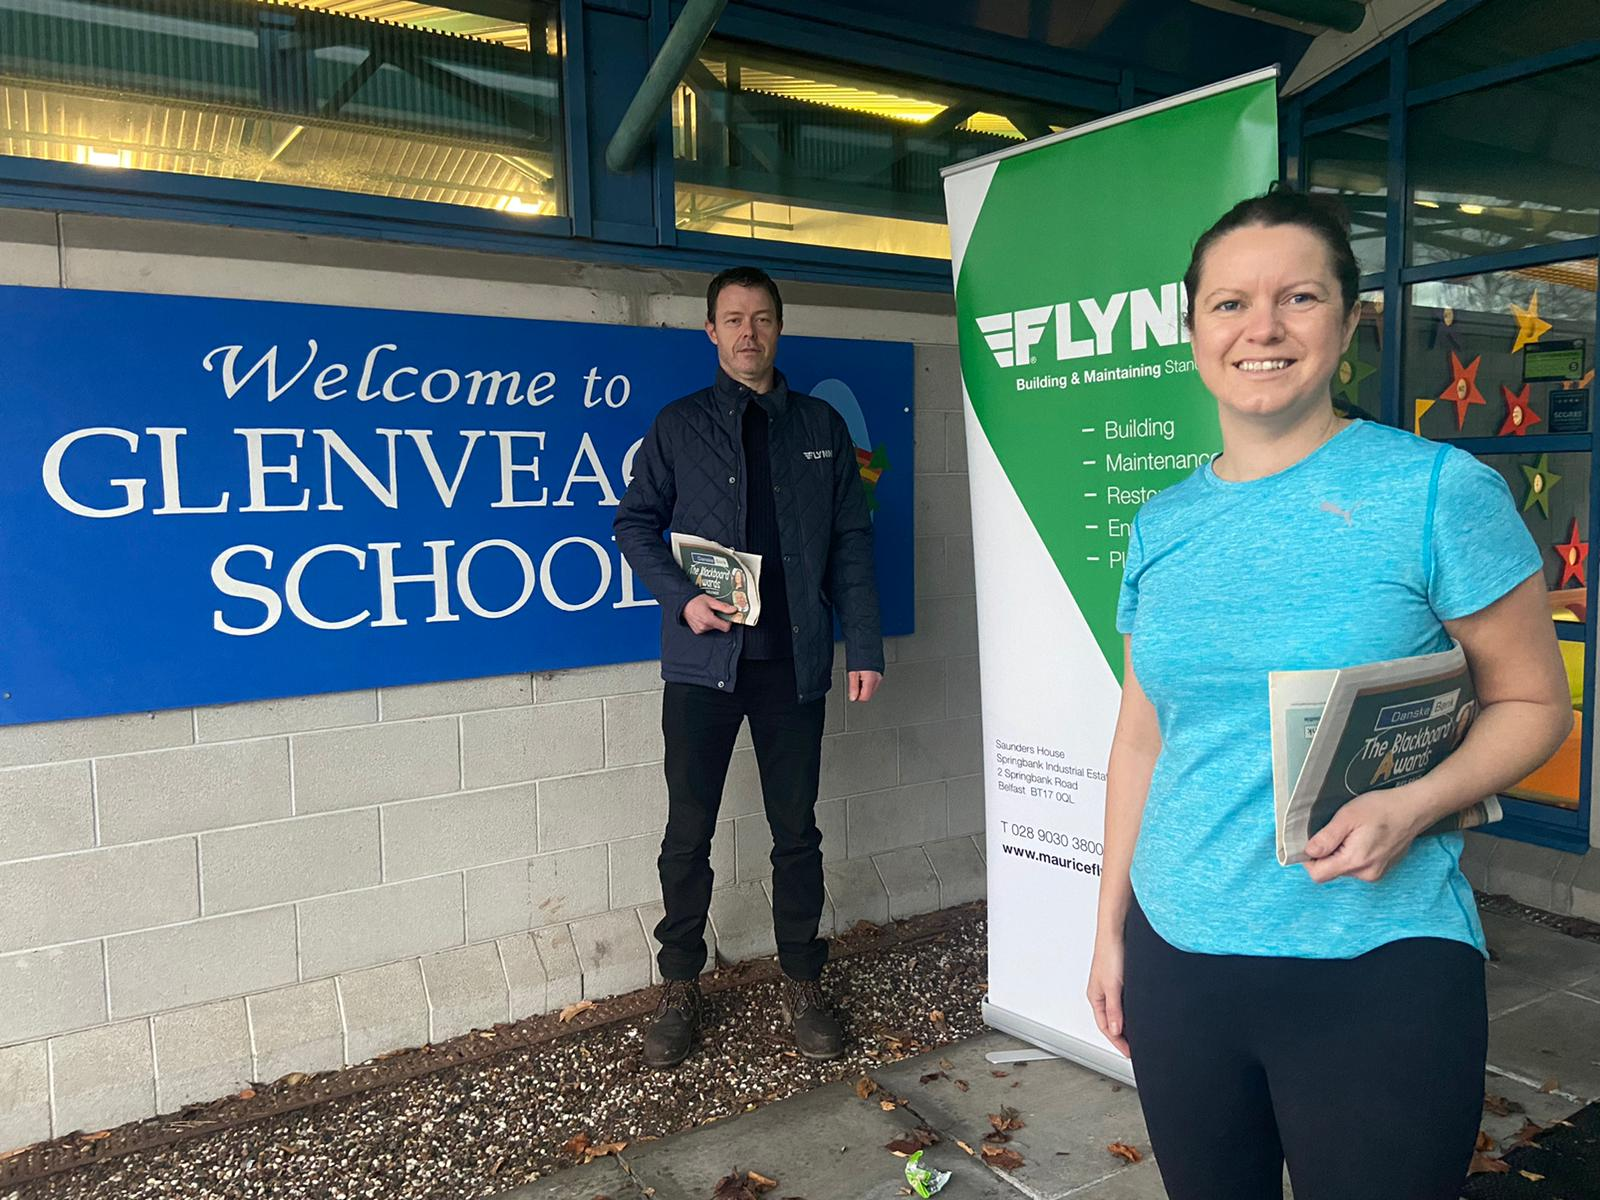 TOGETHER: Karen Kelly, teacher Glenveagh School, and Declan Flanagan from Flynn Construction